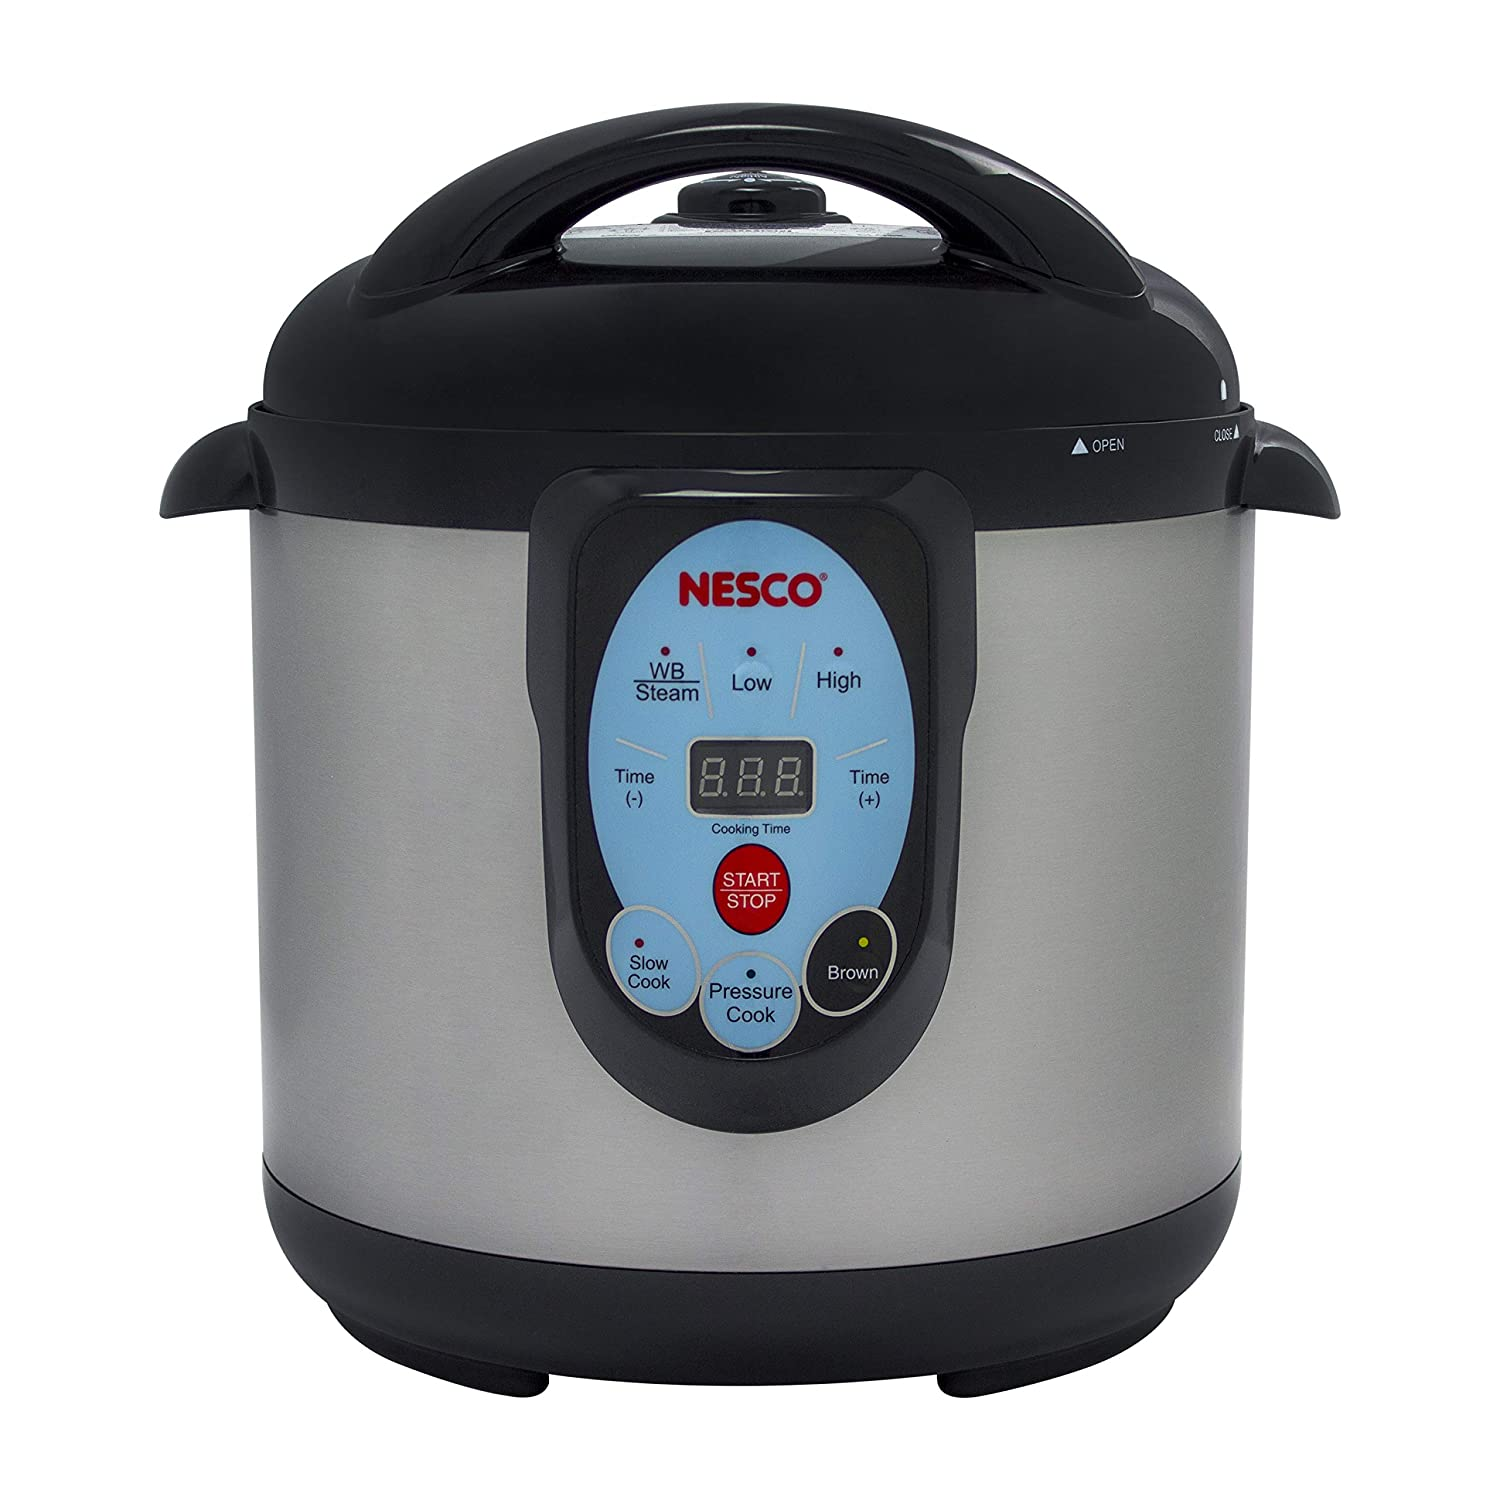 NESCO NPC-9 Smart Pressure Canner and Cooker, 9.5 quart, Stainless Steel